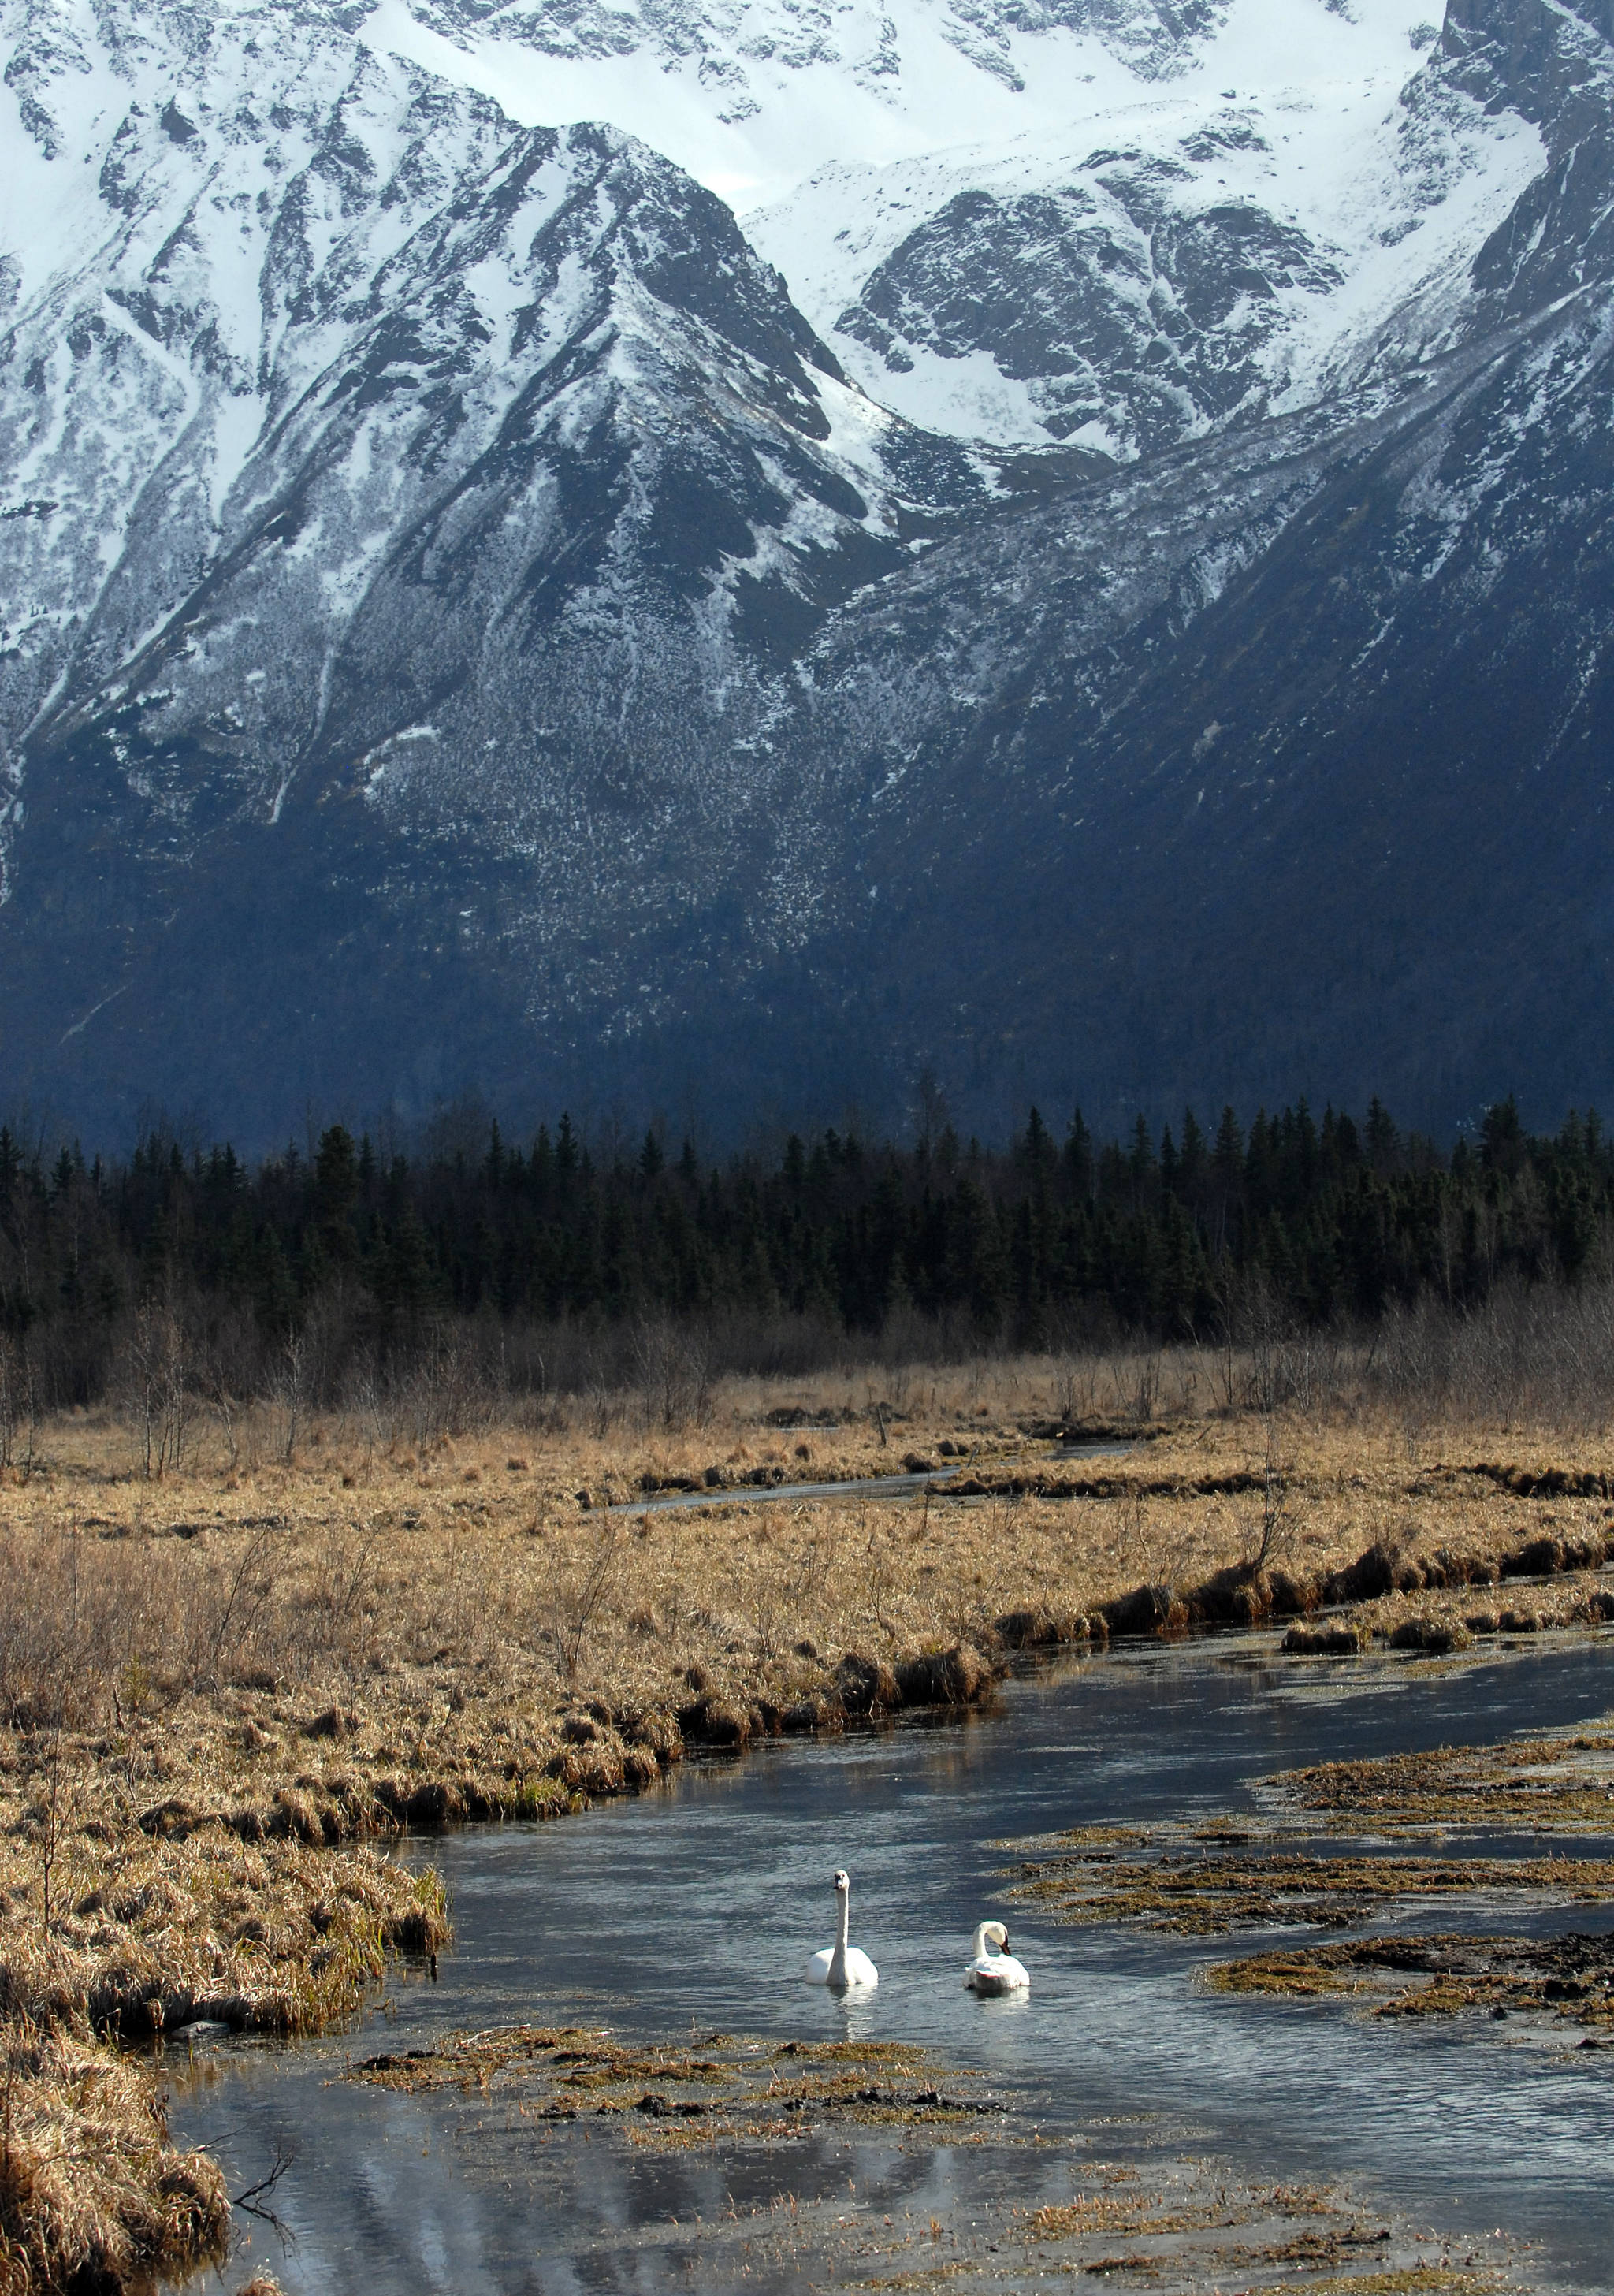 Eagle River Nature Center ideal for spring wildlife viewing in Alaska